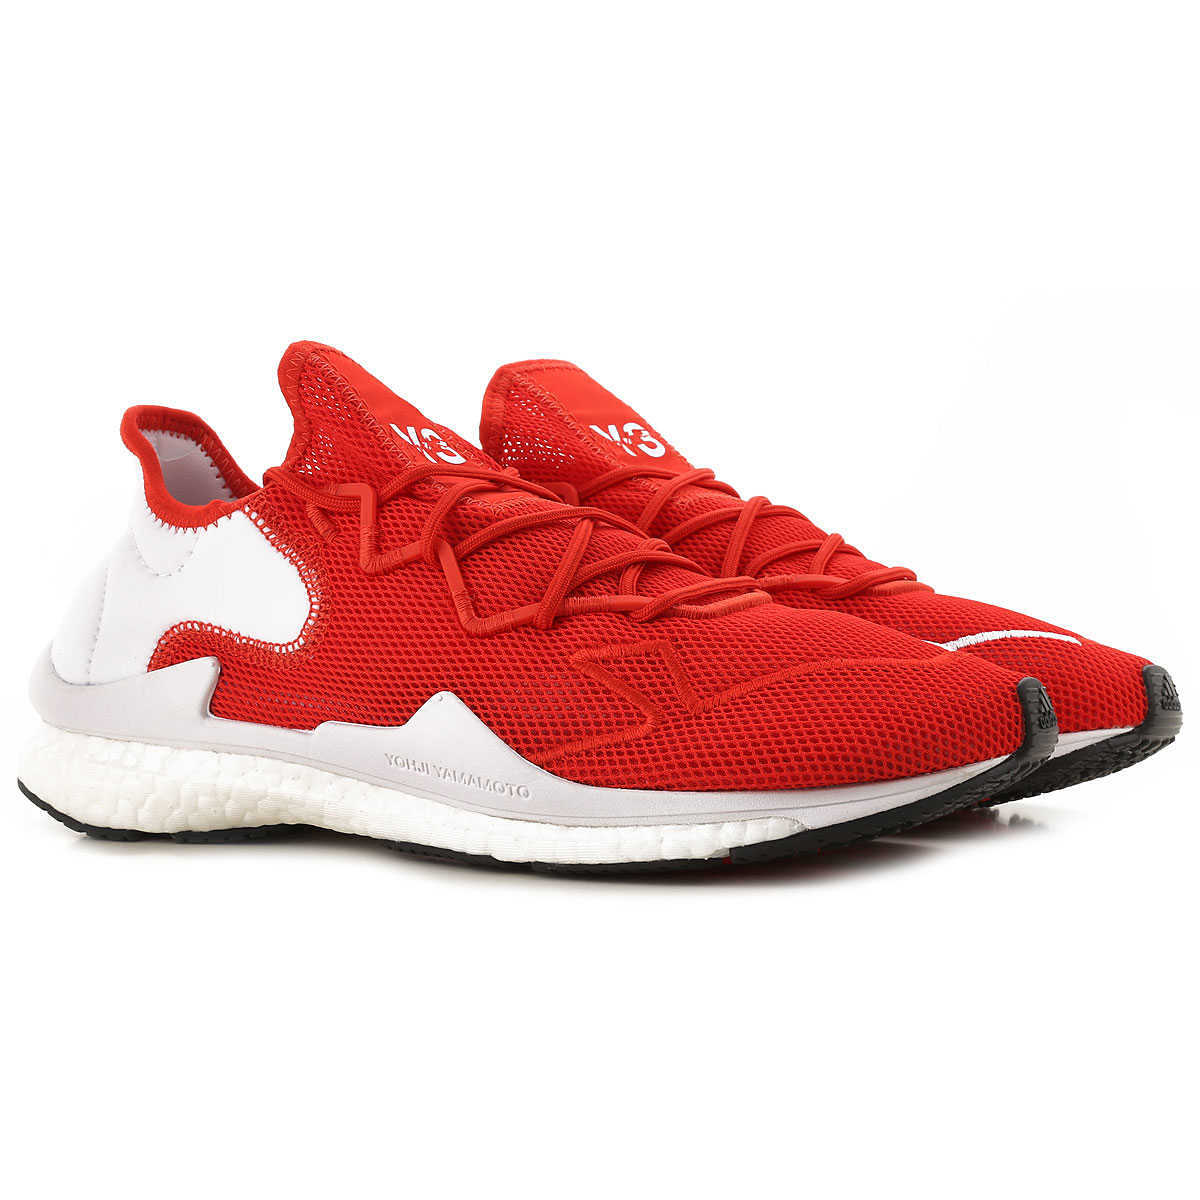 Y3 by Yohji Yamamoto Sneakers for Men On Sale Red - GOOFASH